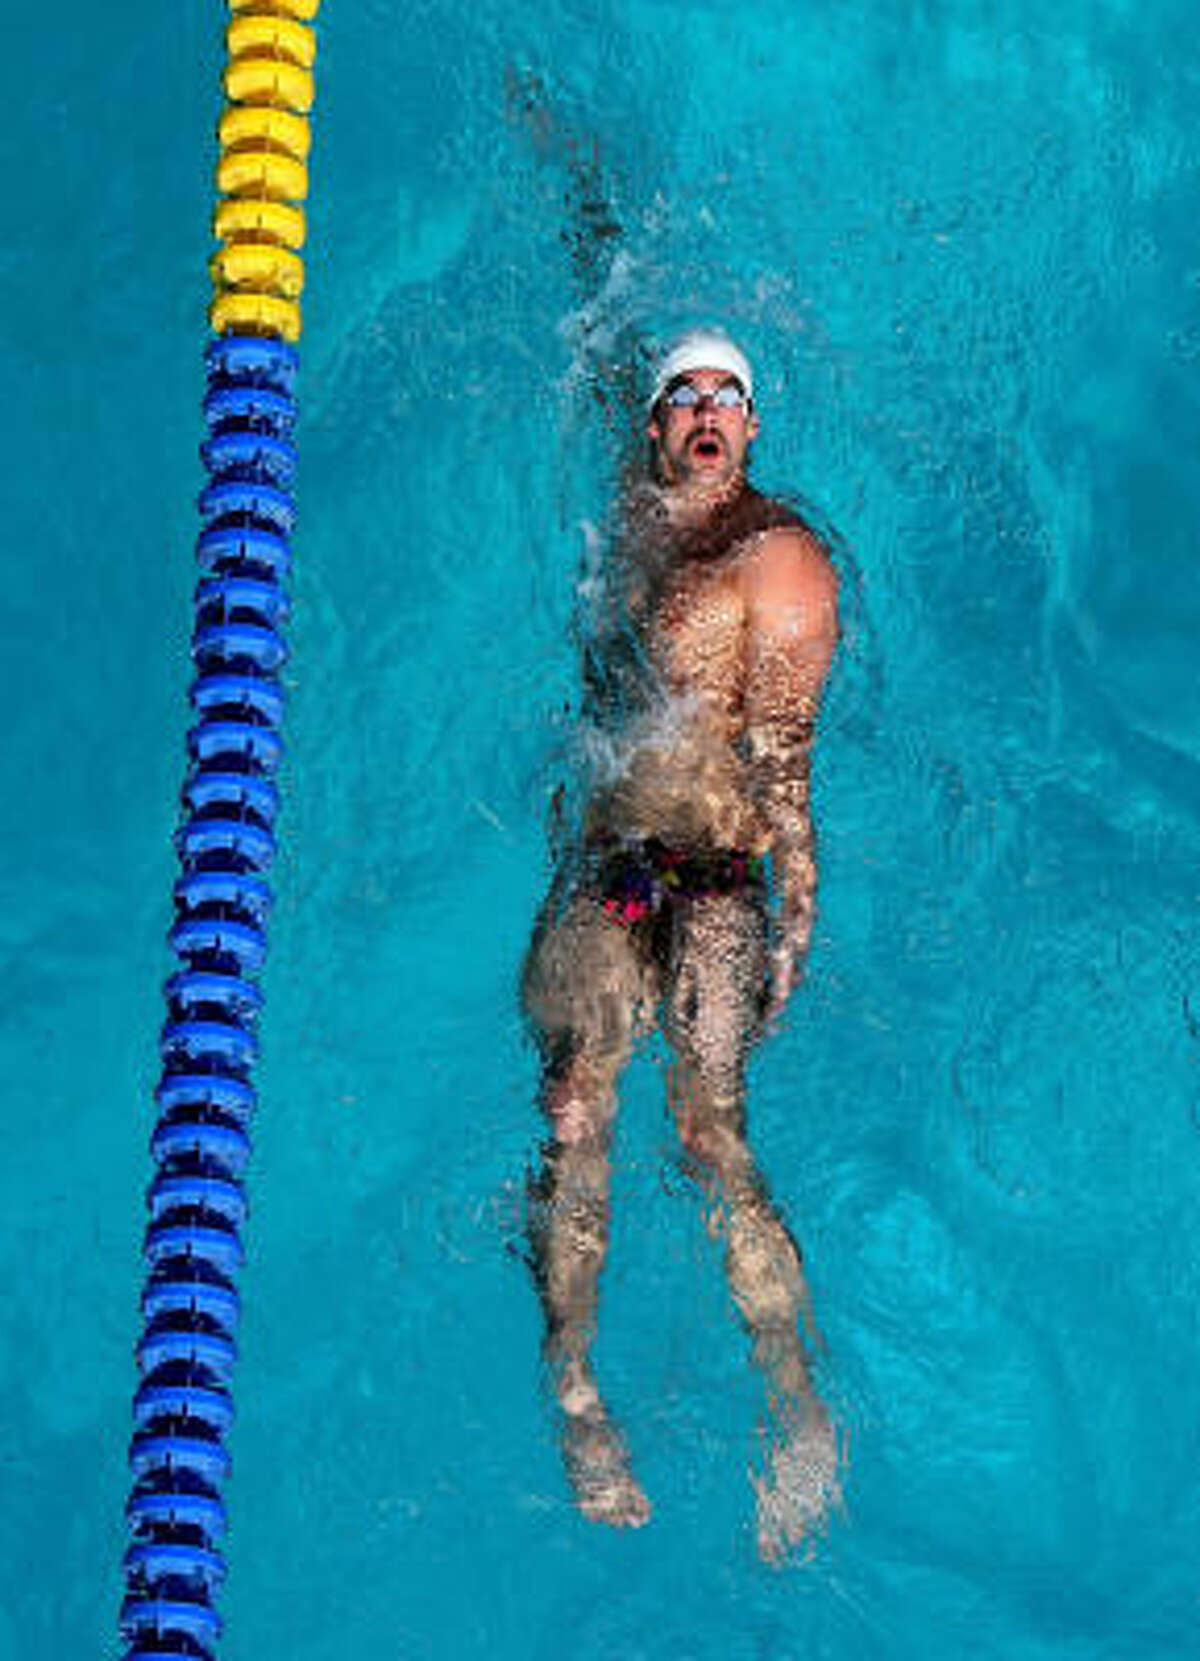 And we already know Michael Phelps looks great in a Speedo.